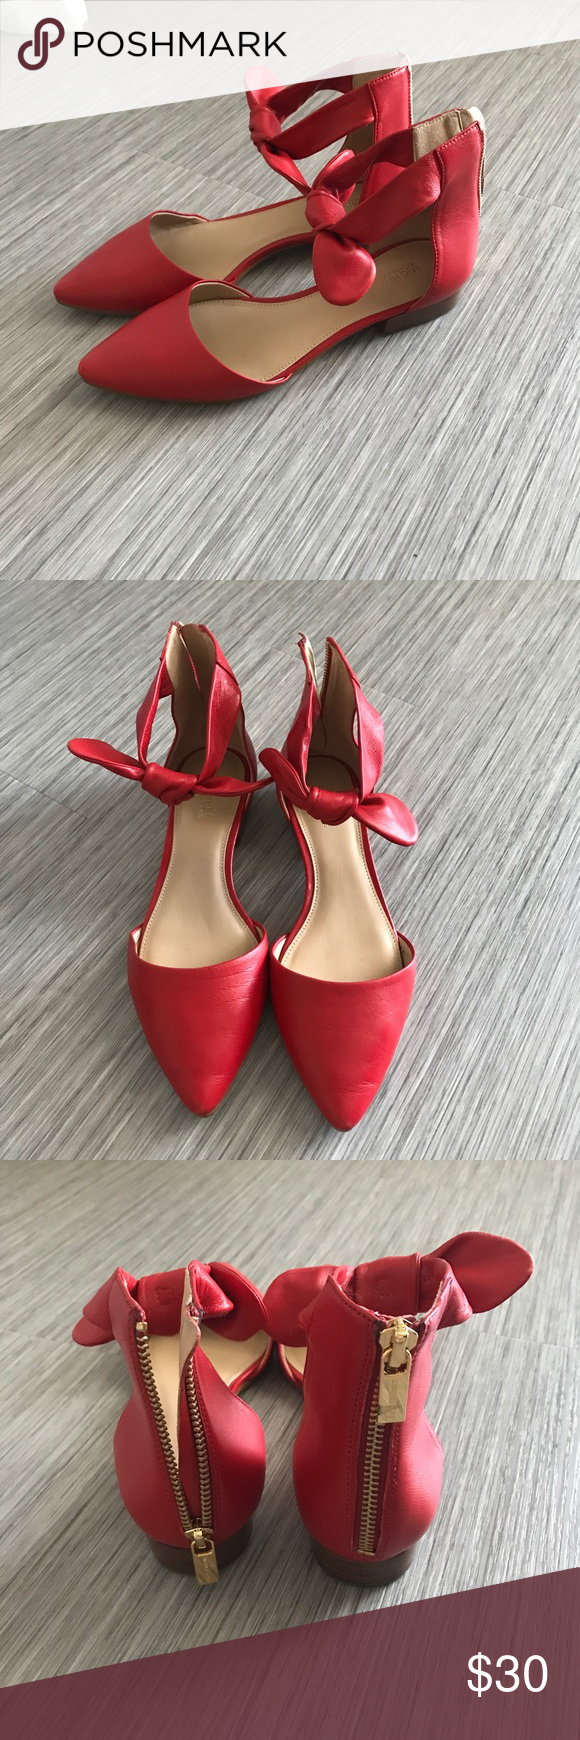 e4c5a30db9a2 Michael Kors Alina Leather Ankle Bow Flats Red leather Michael kors flats  with bow detail. Worn once Michael Kors Shoes Flats   Loafers